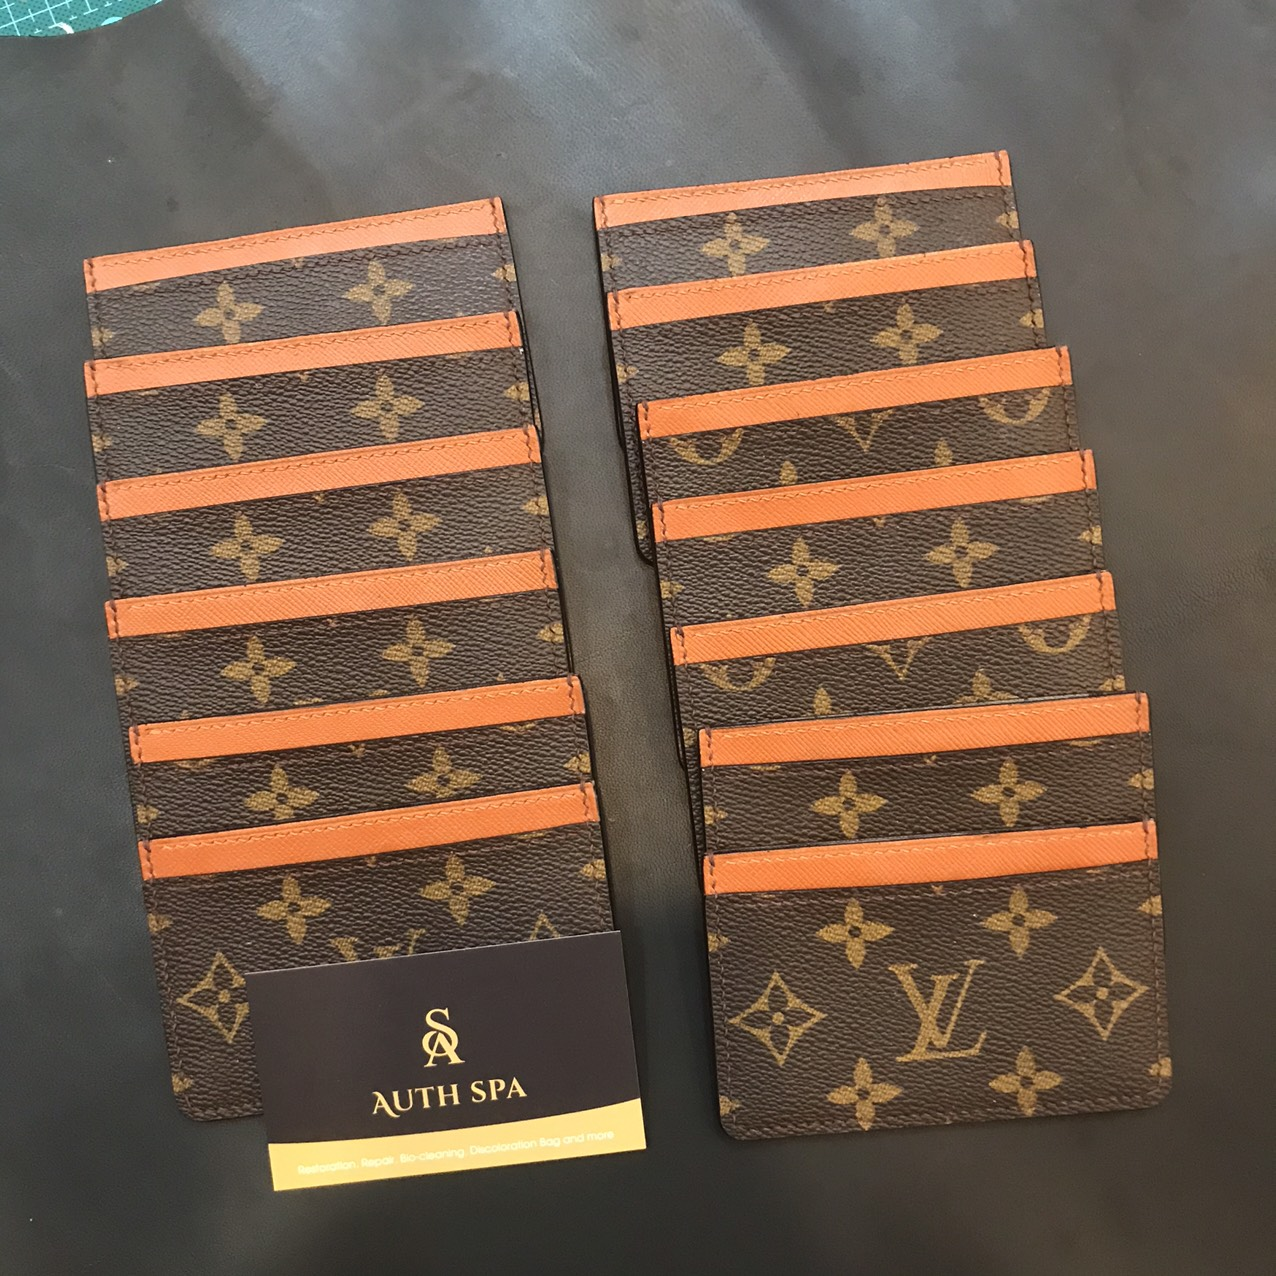 Ví Đựng Card LV ( Card Holder Louis Vuitton ) 15